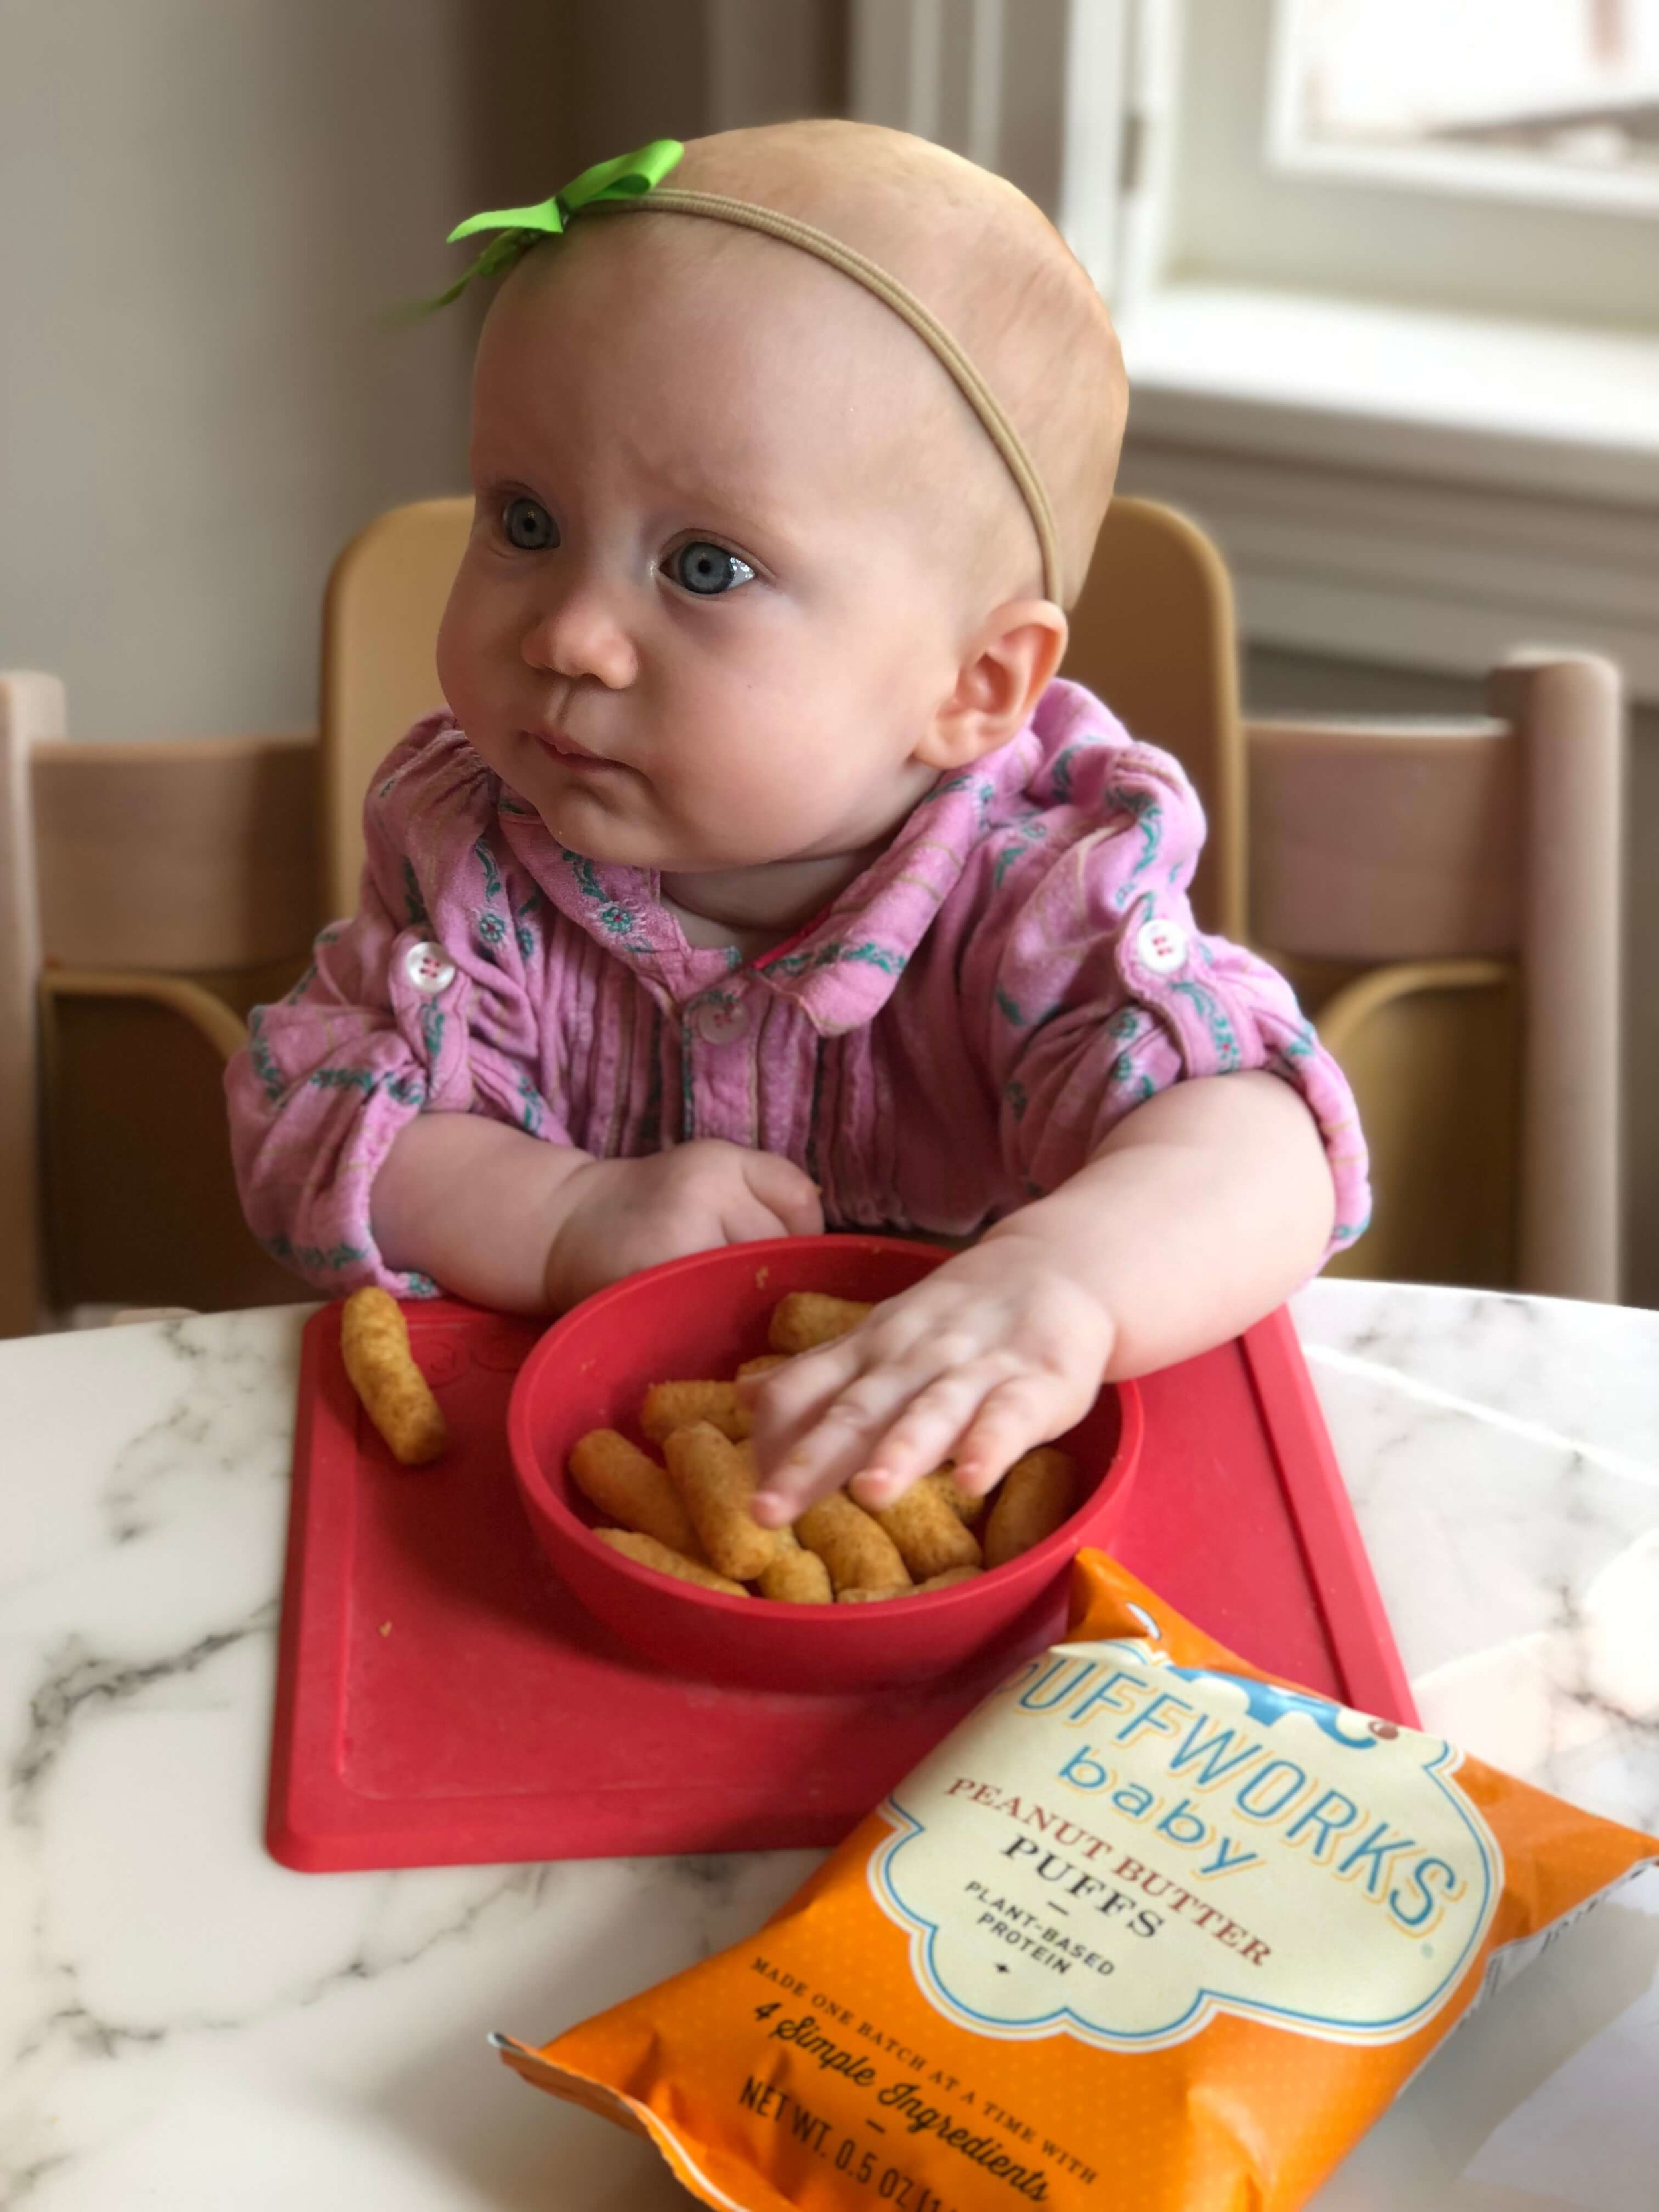 When Can Babies Eat Puffs : babies, puffs, Puffs, Peanut, Protein, Choice, Fortified, Family